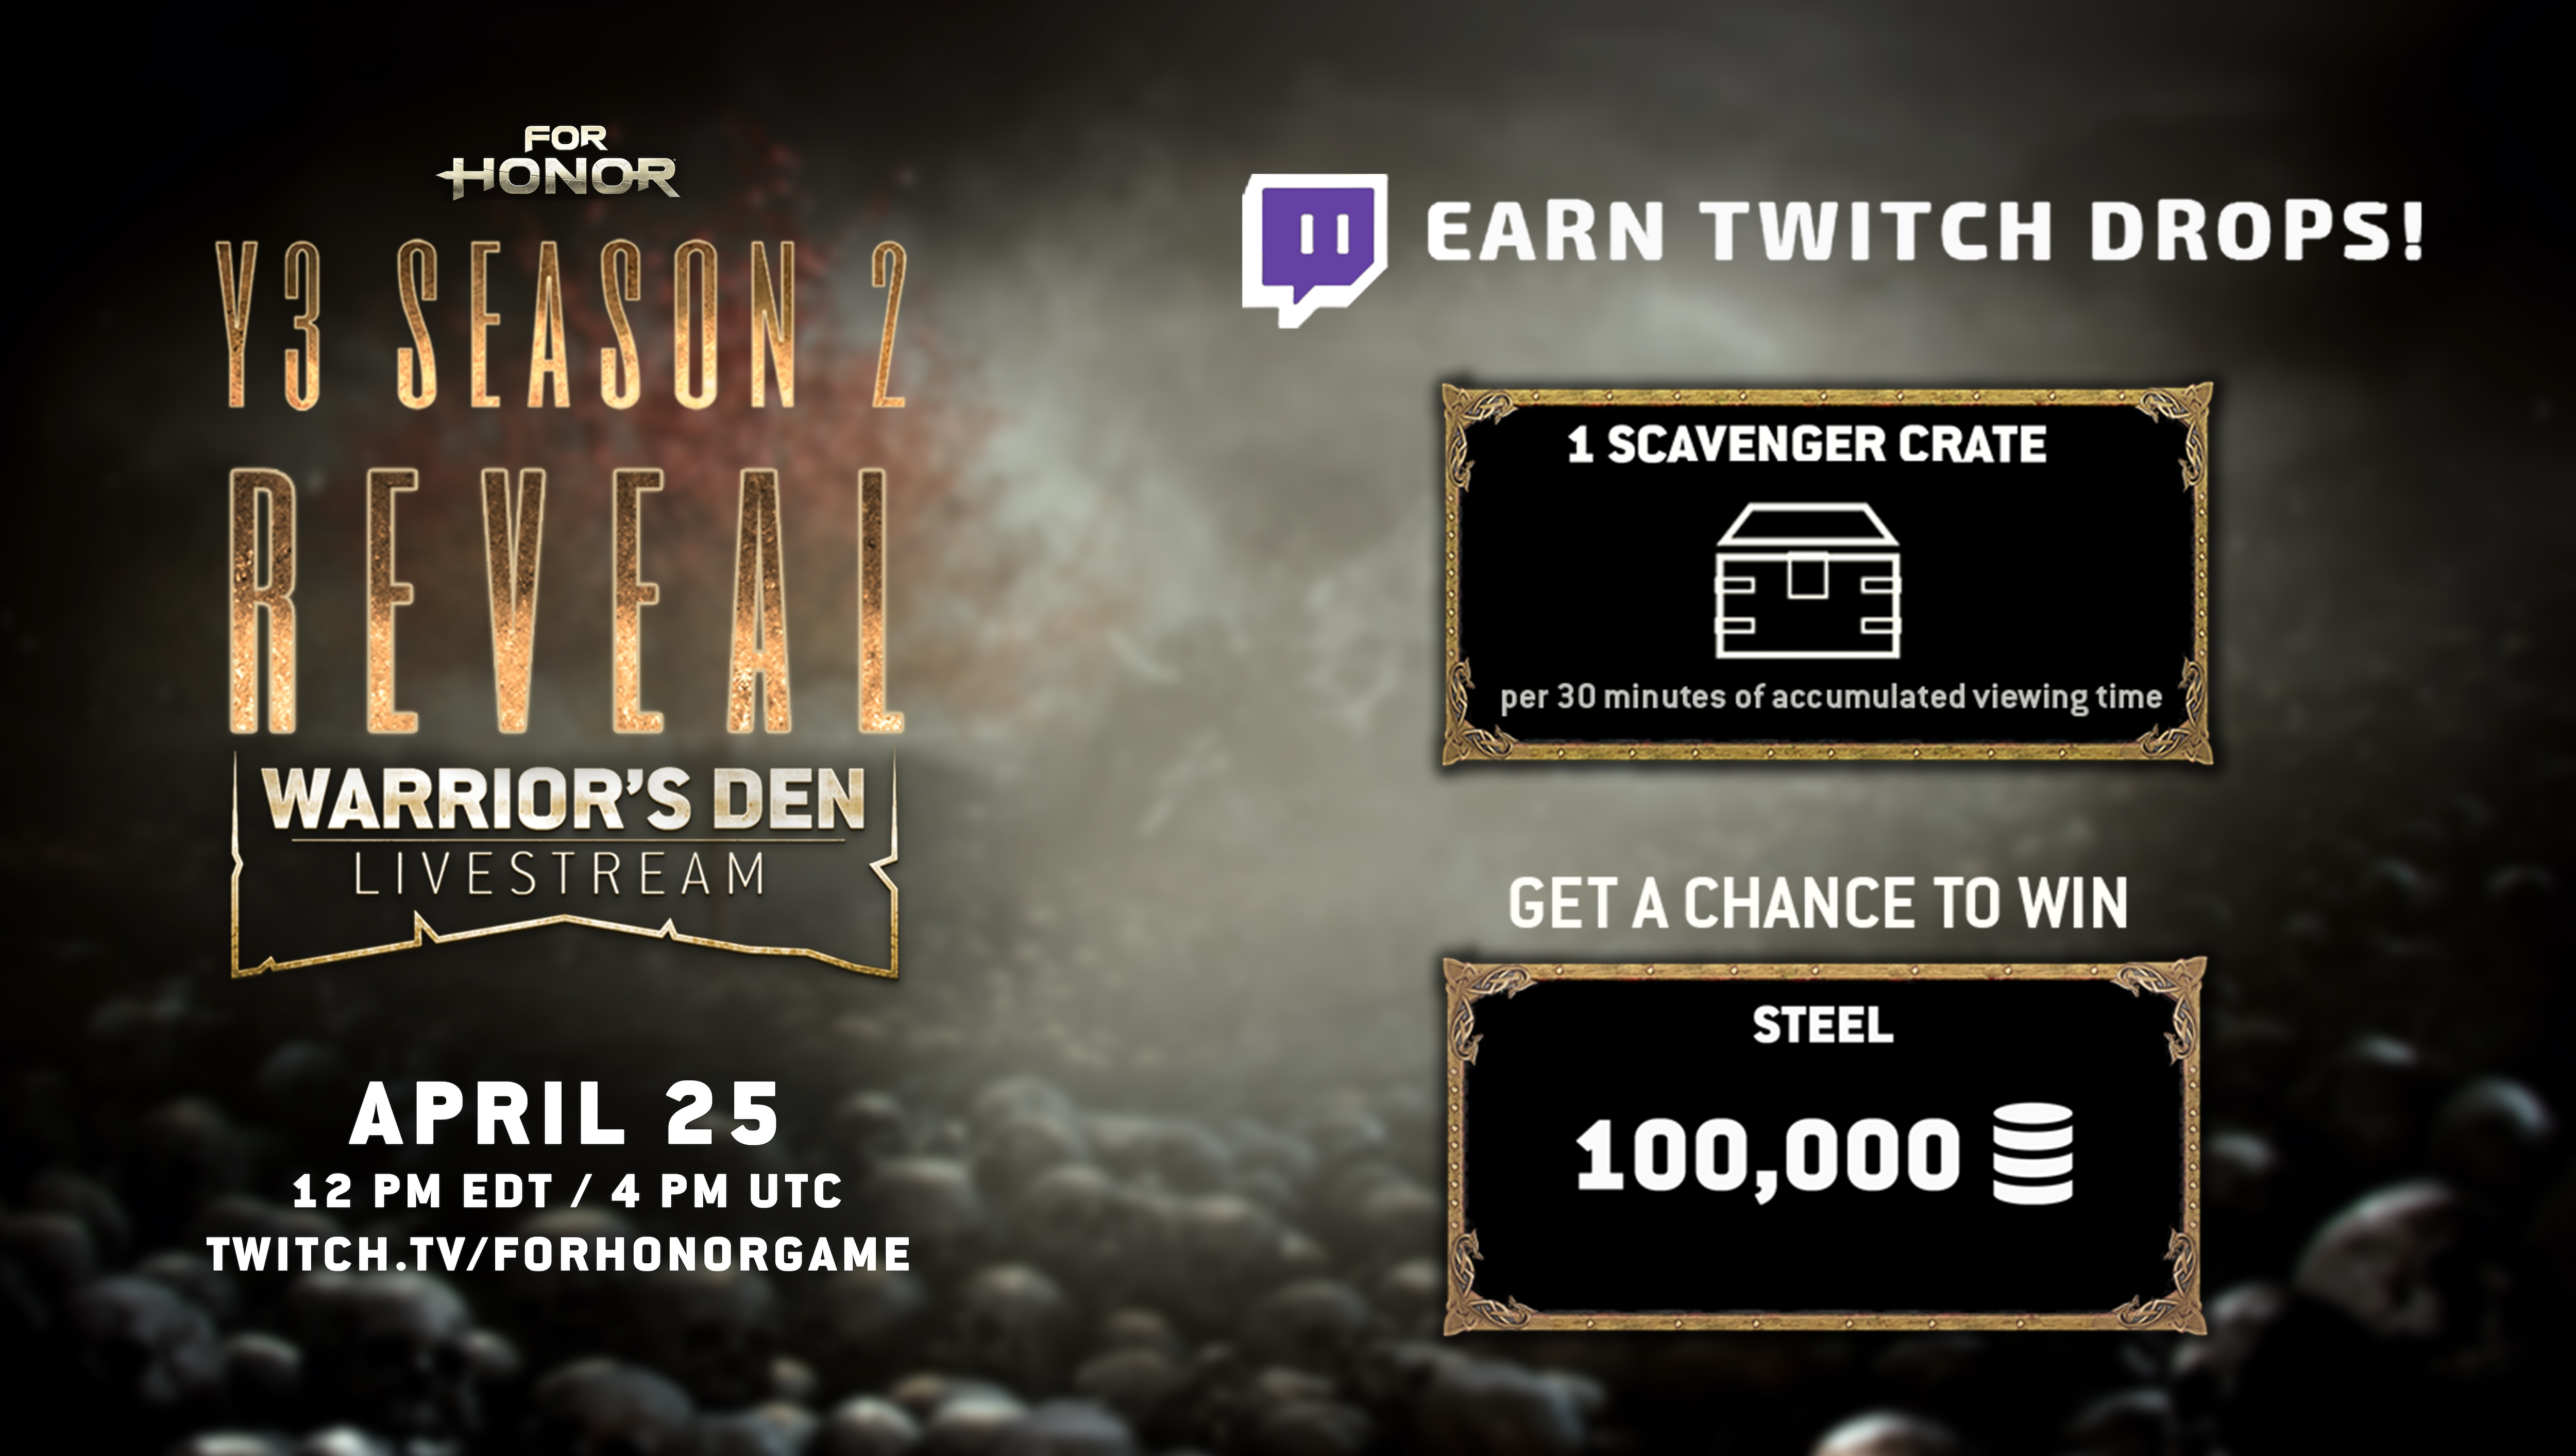 For_Honor_Twitch_Drops_Year_3_Season_2